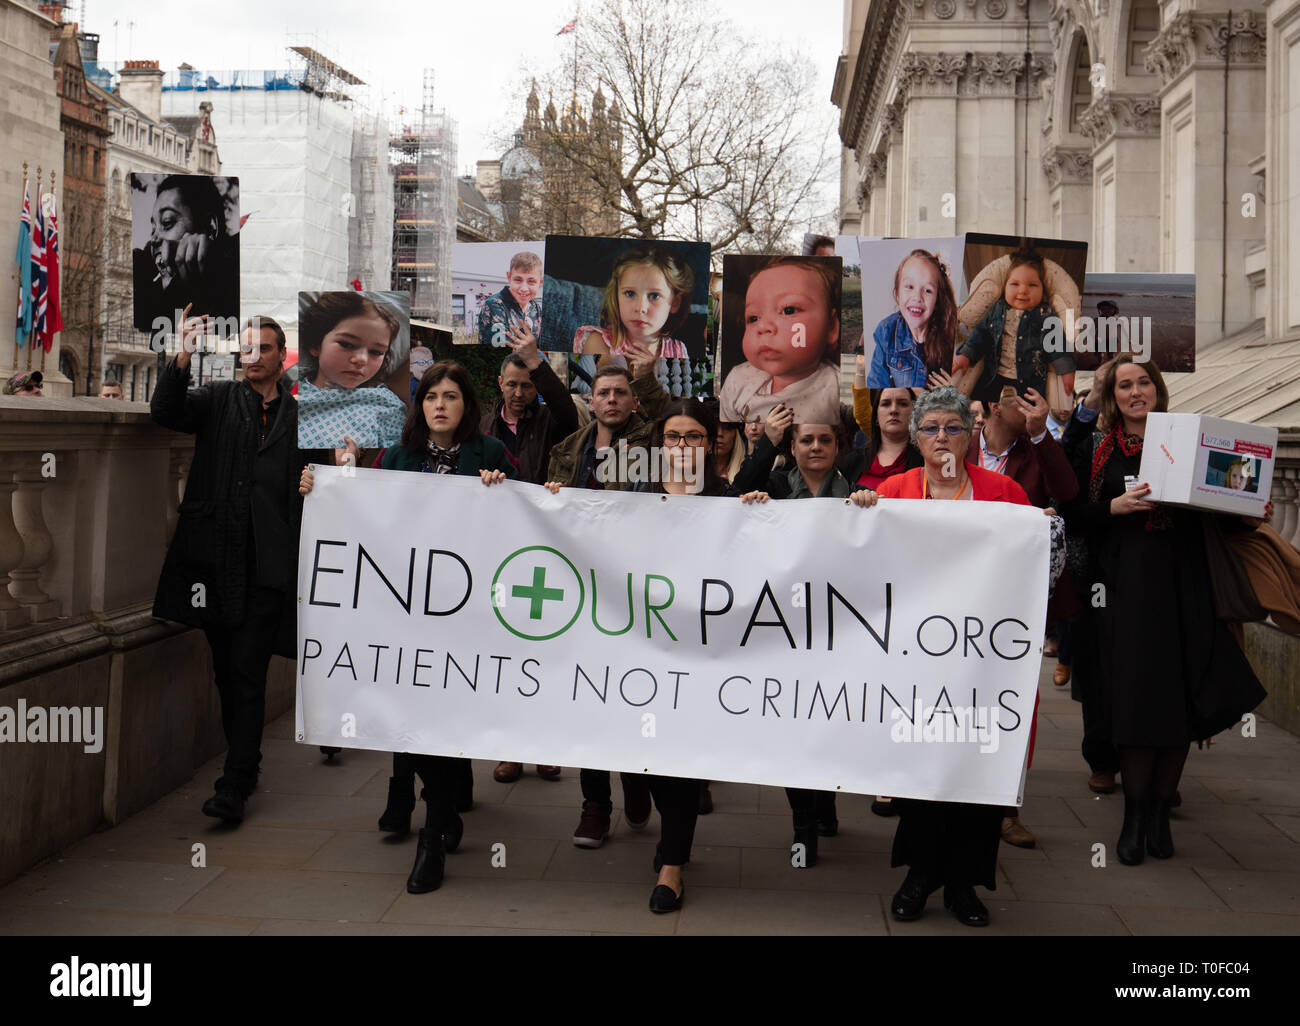 London, UK. 19th March, 2019. Members of the group End Our Pain, walk to 10 Downing Street, with images of their loved ones and deliver a petition with 577578 signatures in addition to a hundred Members of Parliament, for patient access of legalised medical cannabis. Credit: Joe Kuis / Alamy Live News - Stock Image